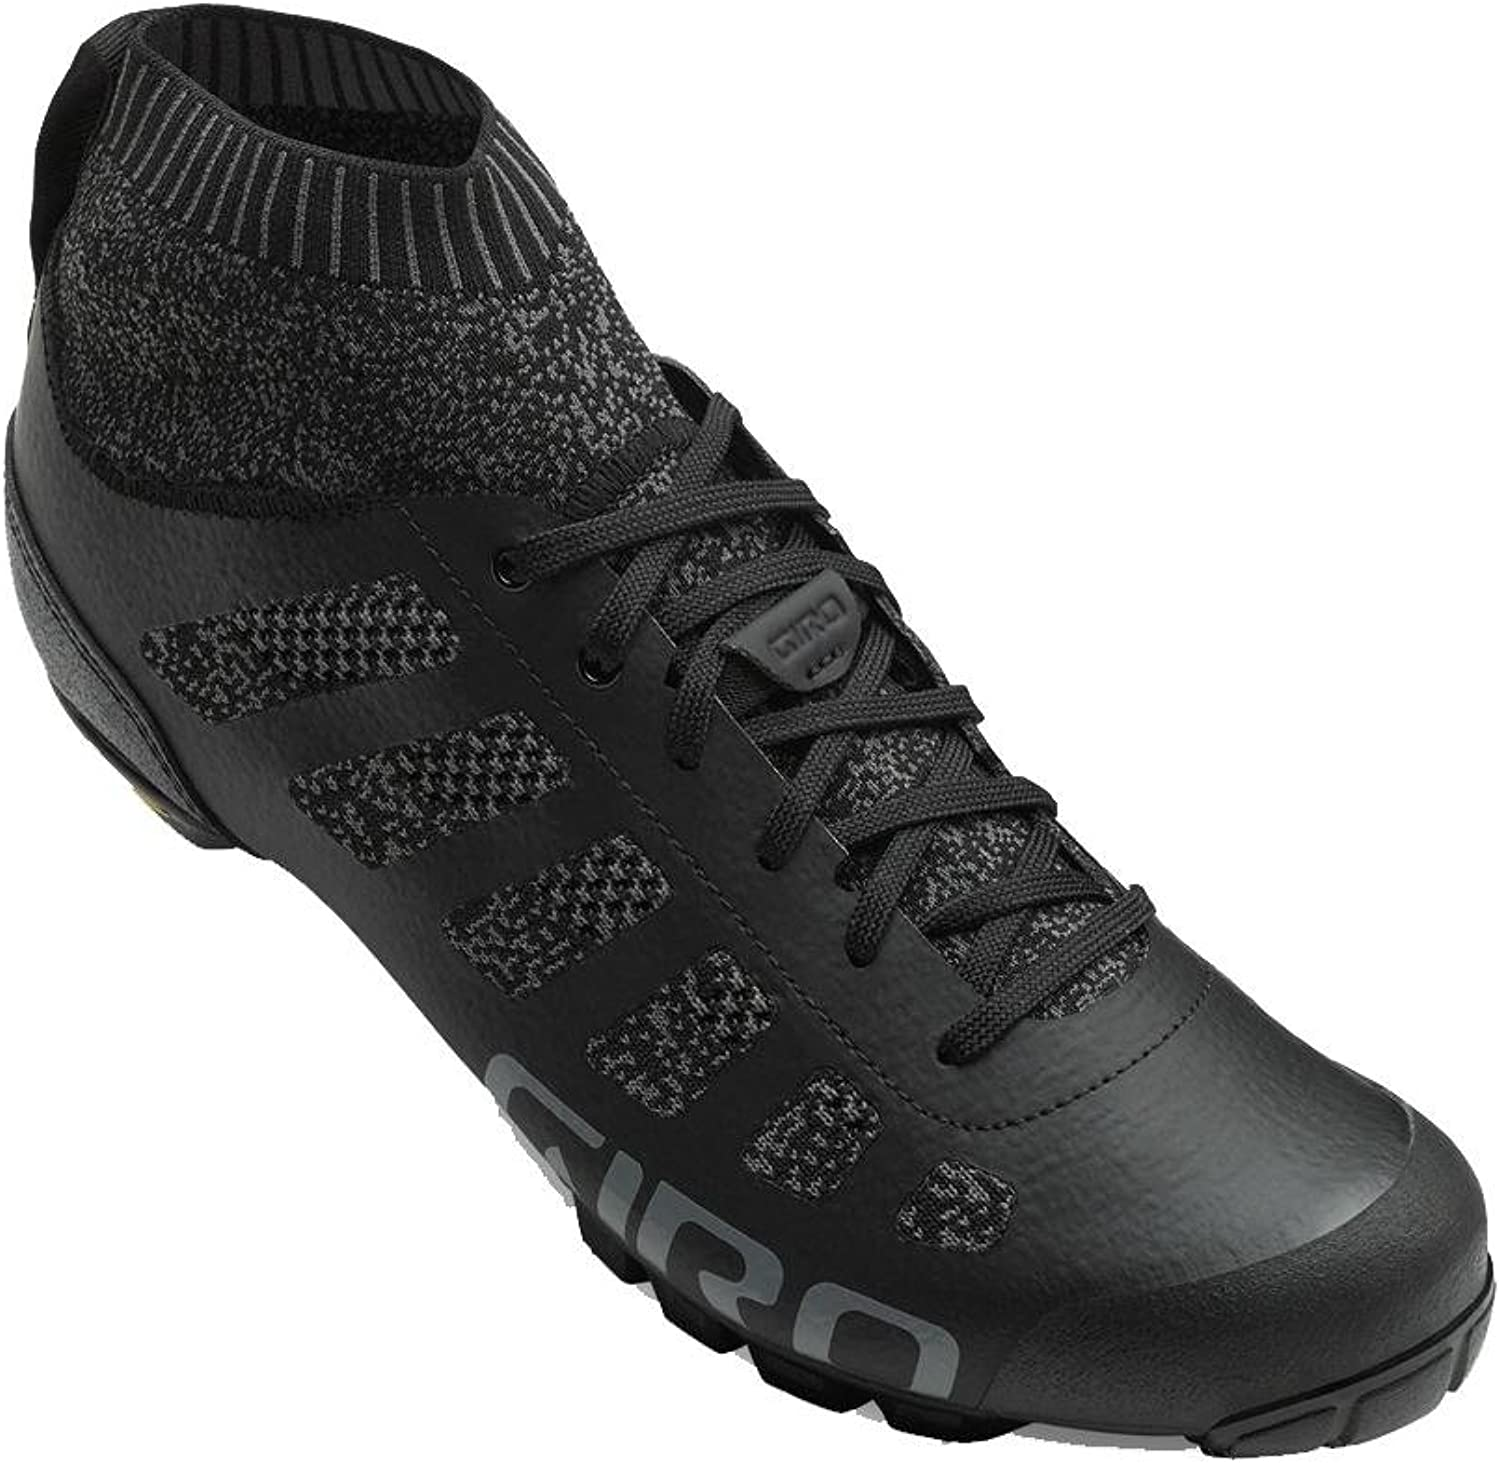 Giro Empire VR70 Knit Cycling shoes - Men's